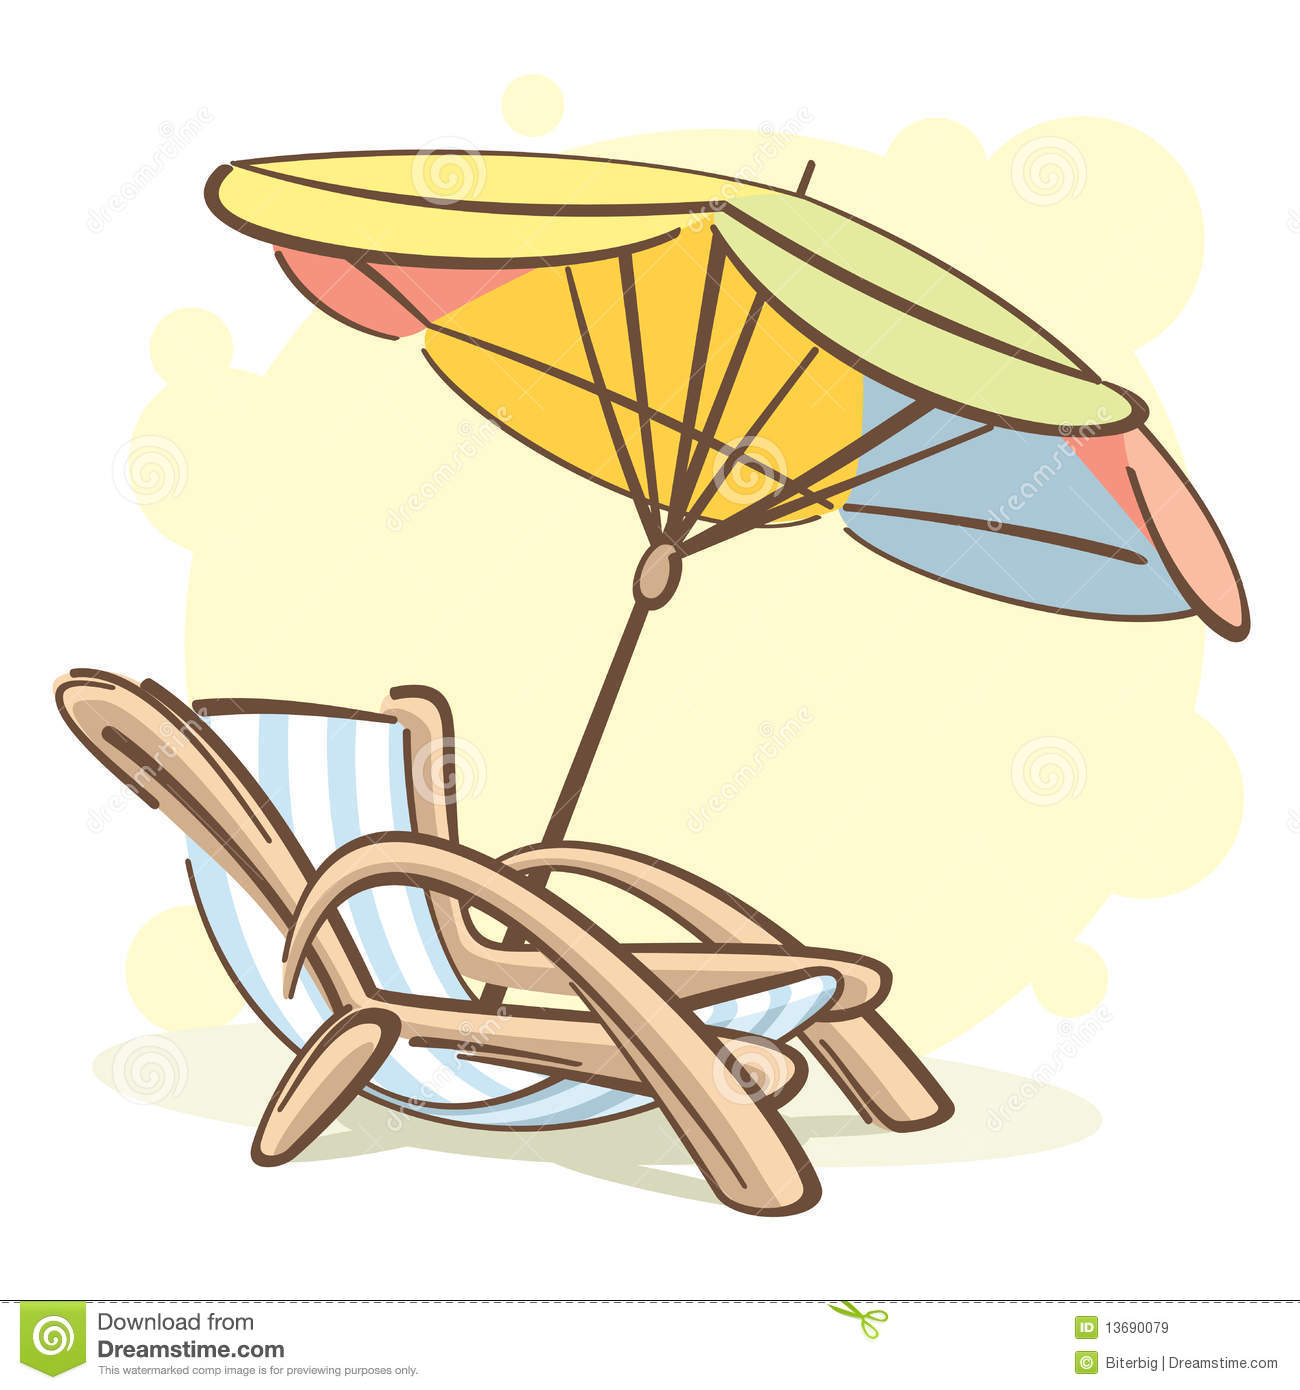 Liege Clipart Chaise Longue And Parasol Royalty Free Stock Images